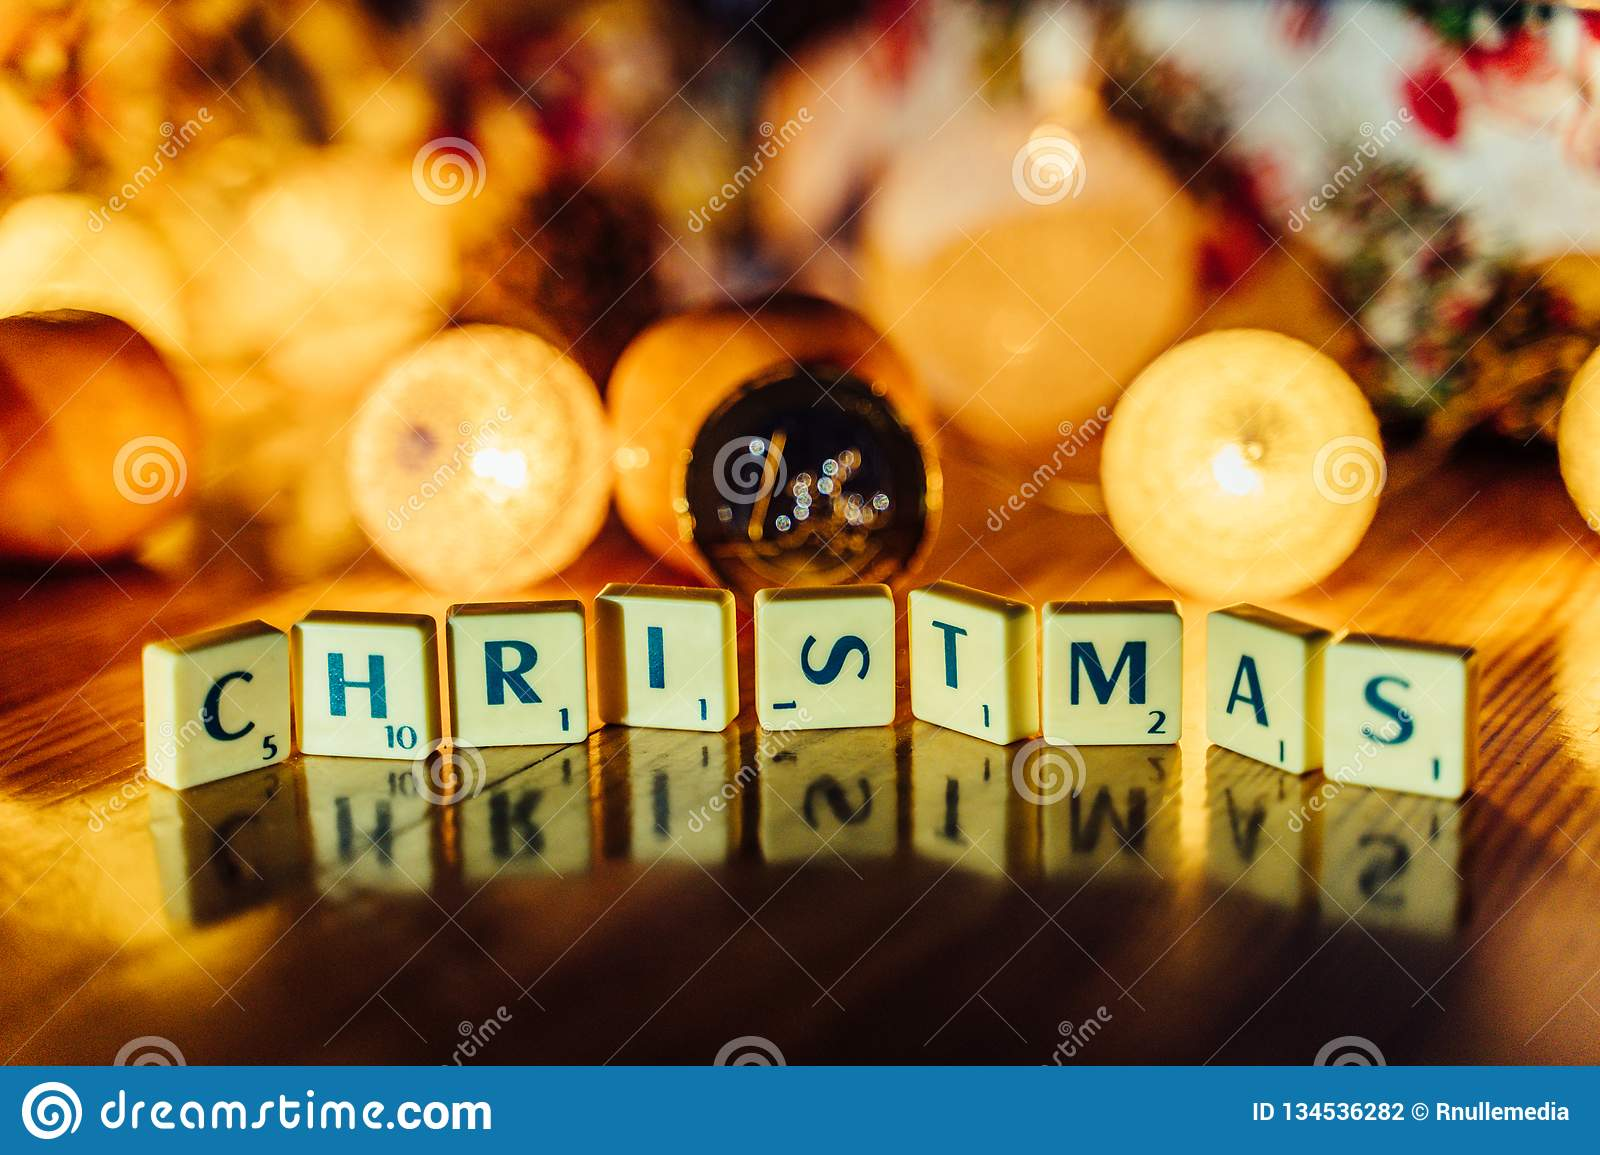 Word \'Christmas\' set on the Wooden Background from Letters of Board Game With the Blurred Christmas Lights, Fruits and Presents. In the Background together stock photography